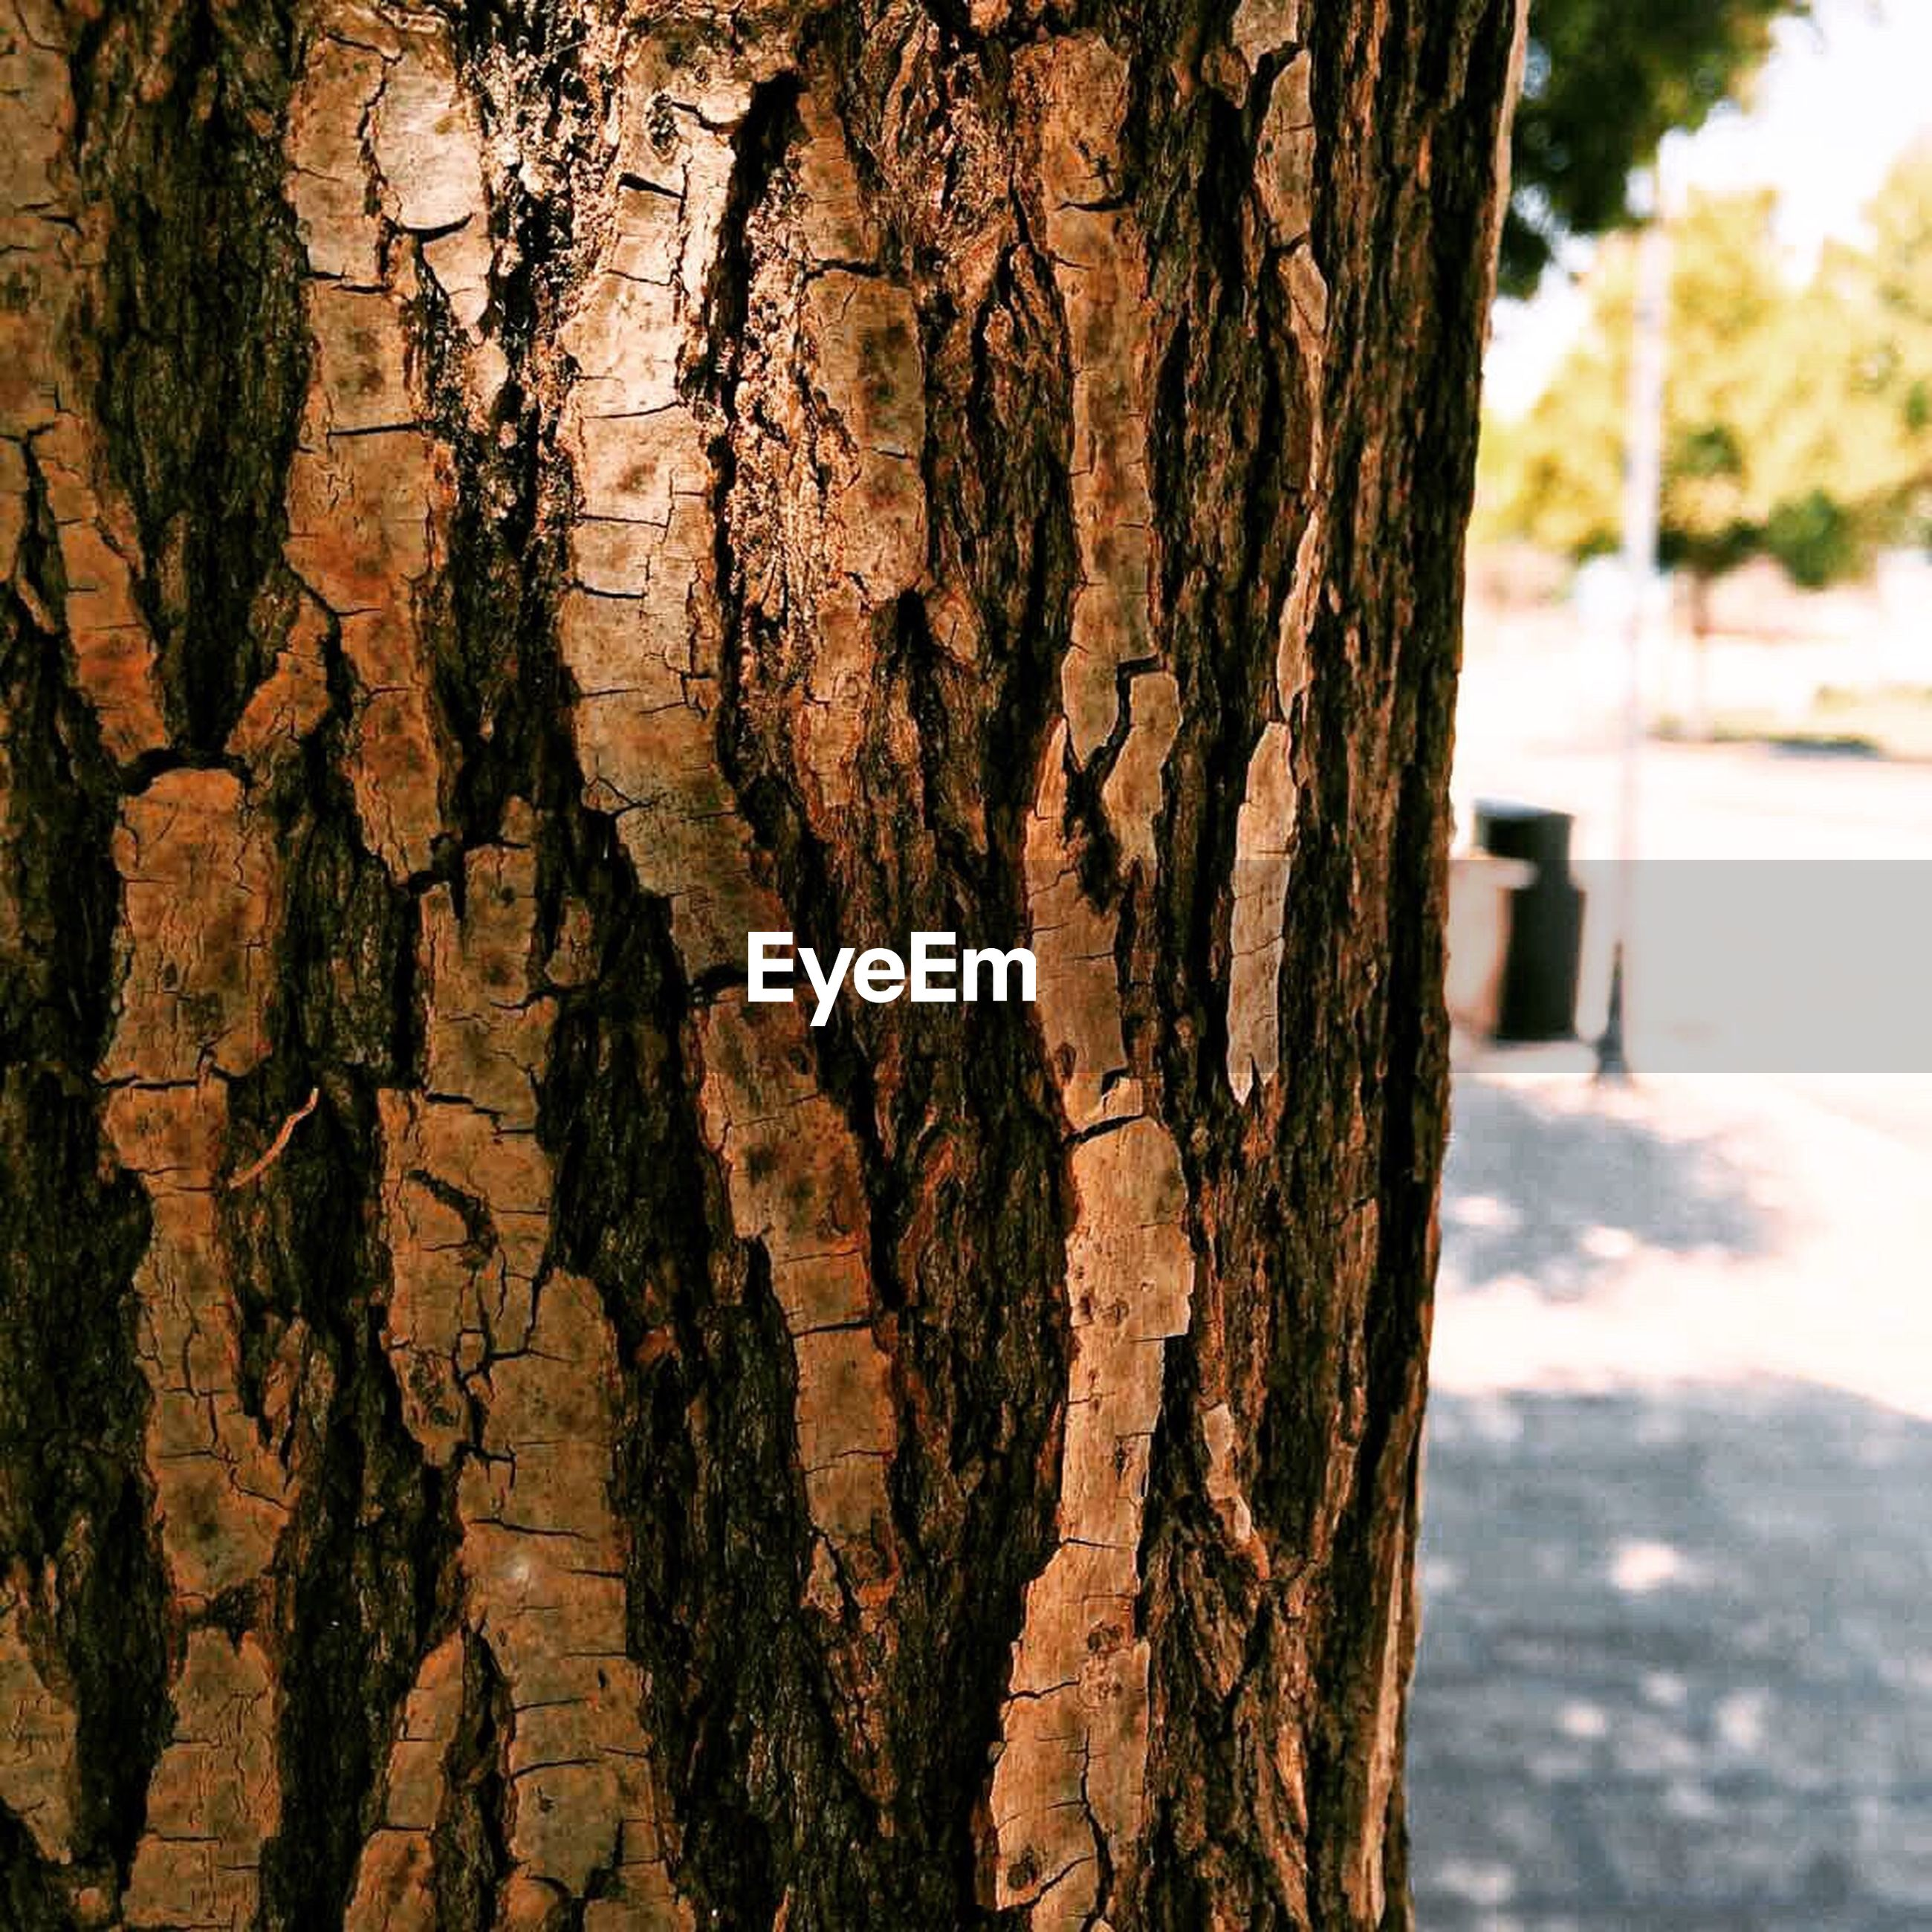 tree trunk, textured, tree, close-up, rough, bark, focus on foreground, wood - material, natural pattern, nature, pattern, day, growth, outdoors, plant bark, full frame, brown, no people, branch, backgrounds